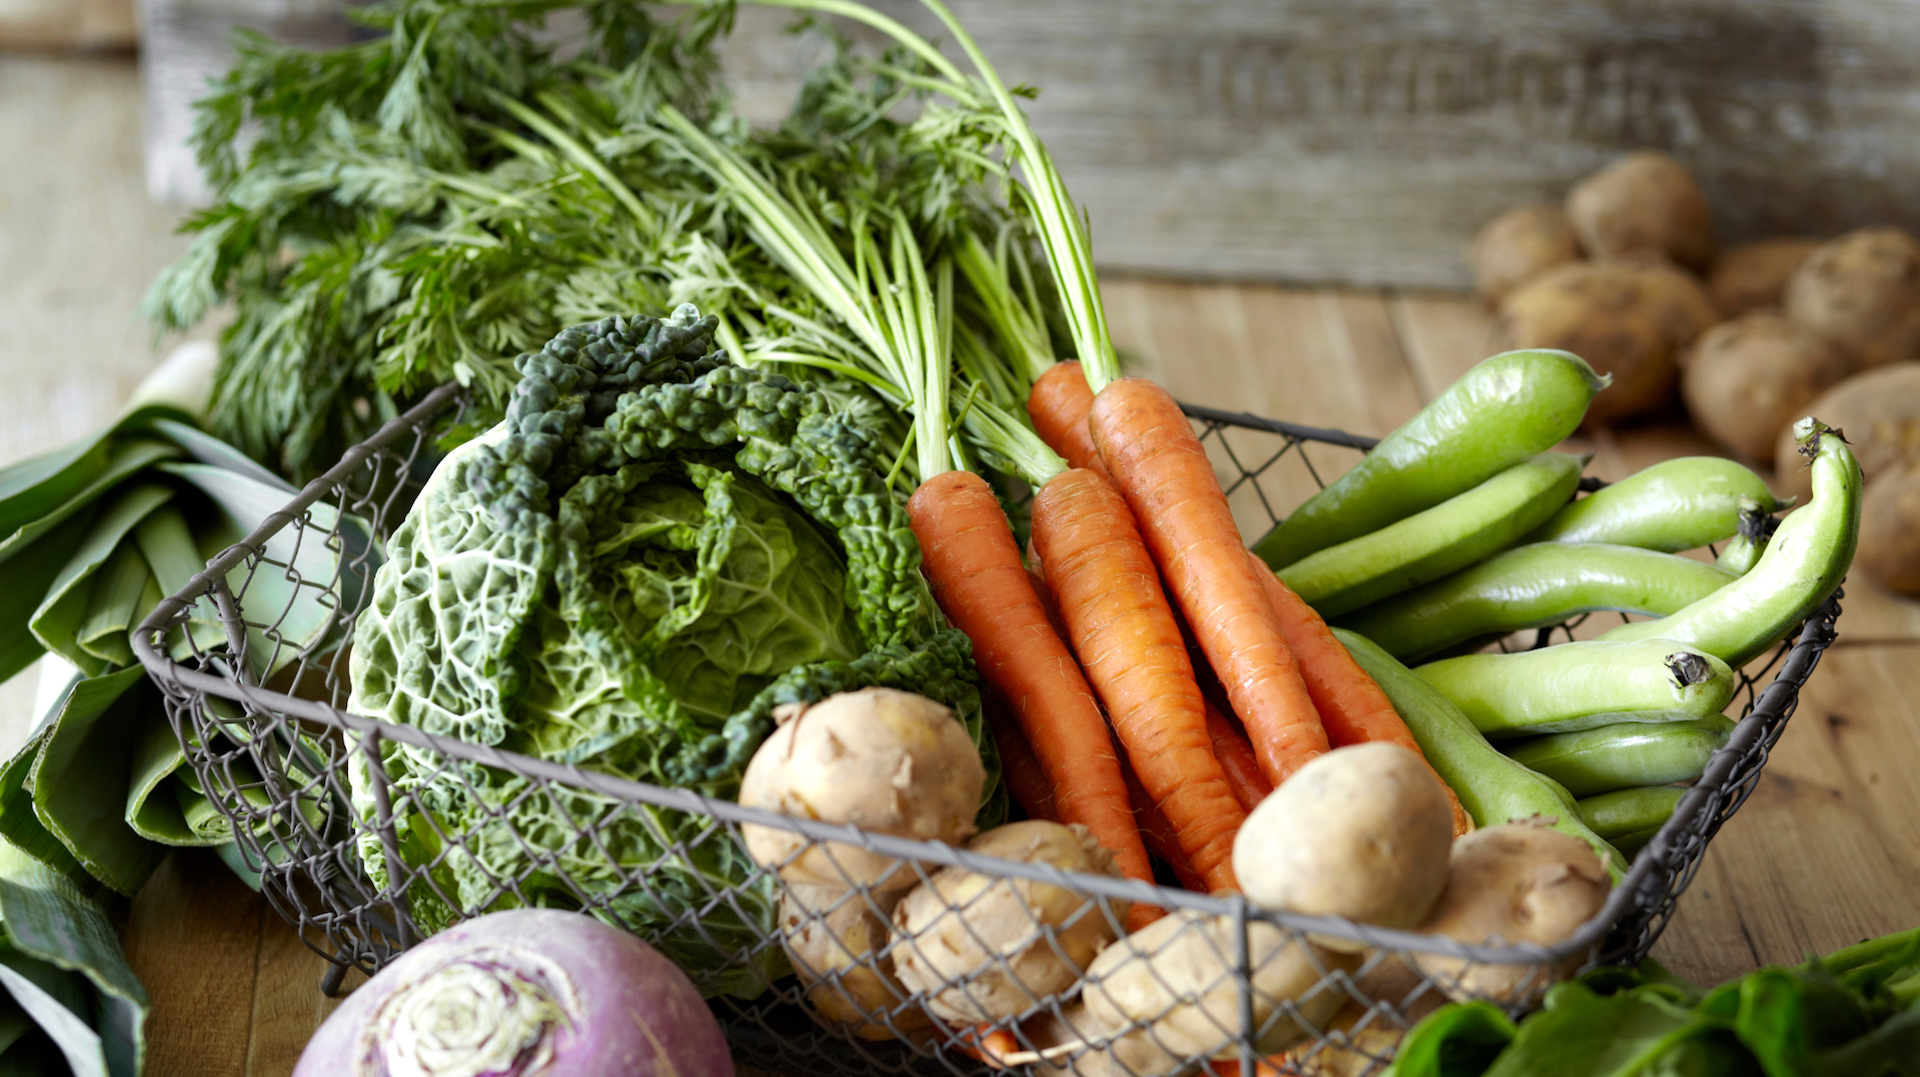 9 Easy Vegetables To Grow Indoors Kale Carrots More Sheknows,What A Beautiful Name Piano Sheet Music Easy